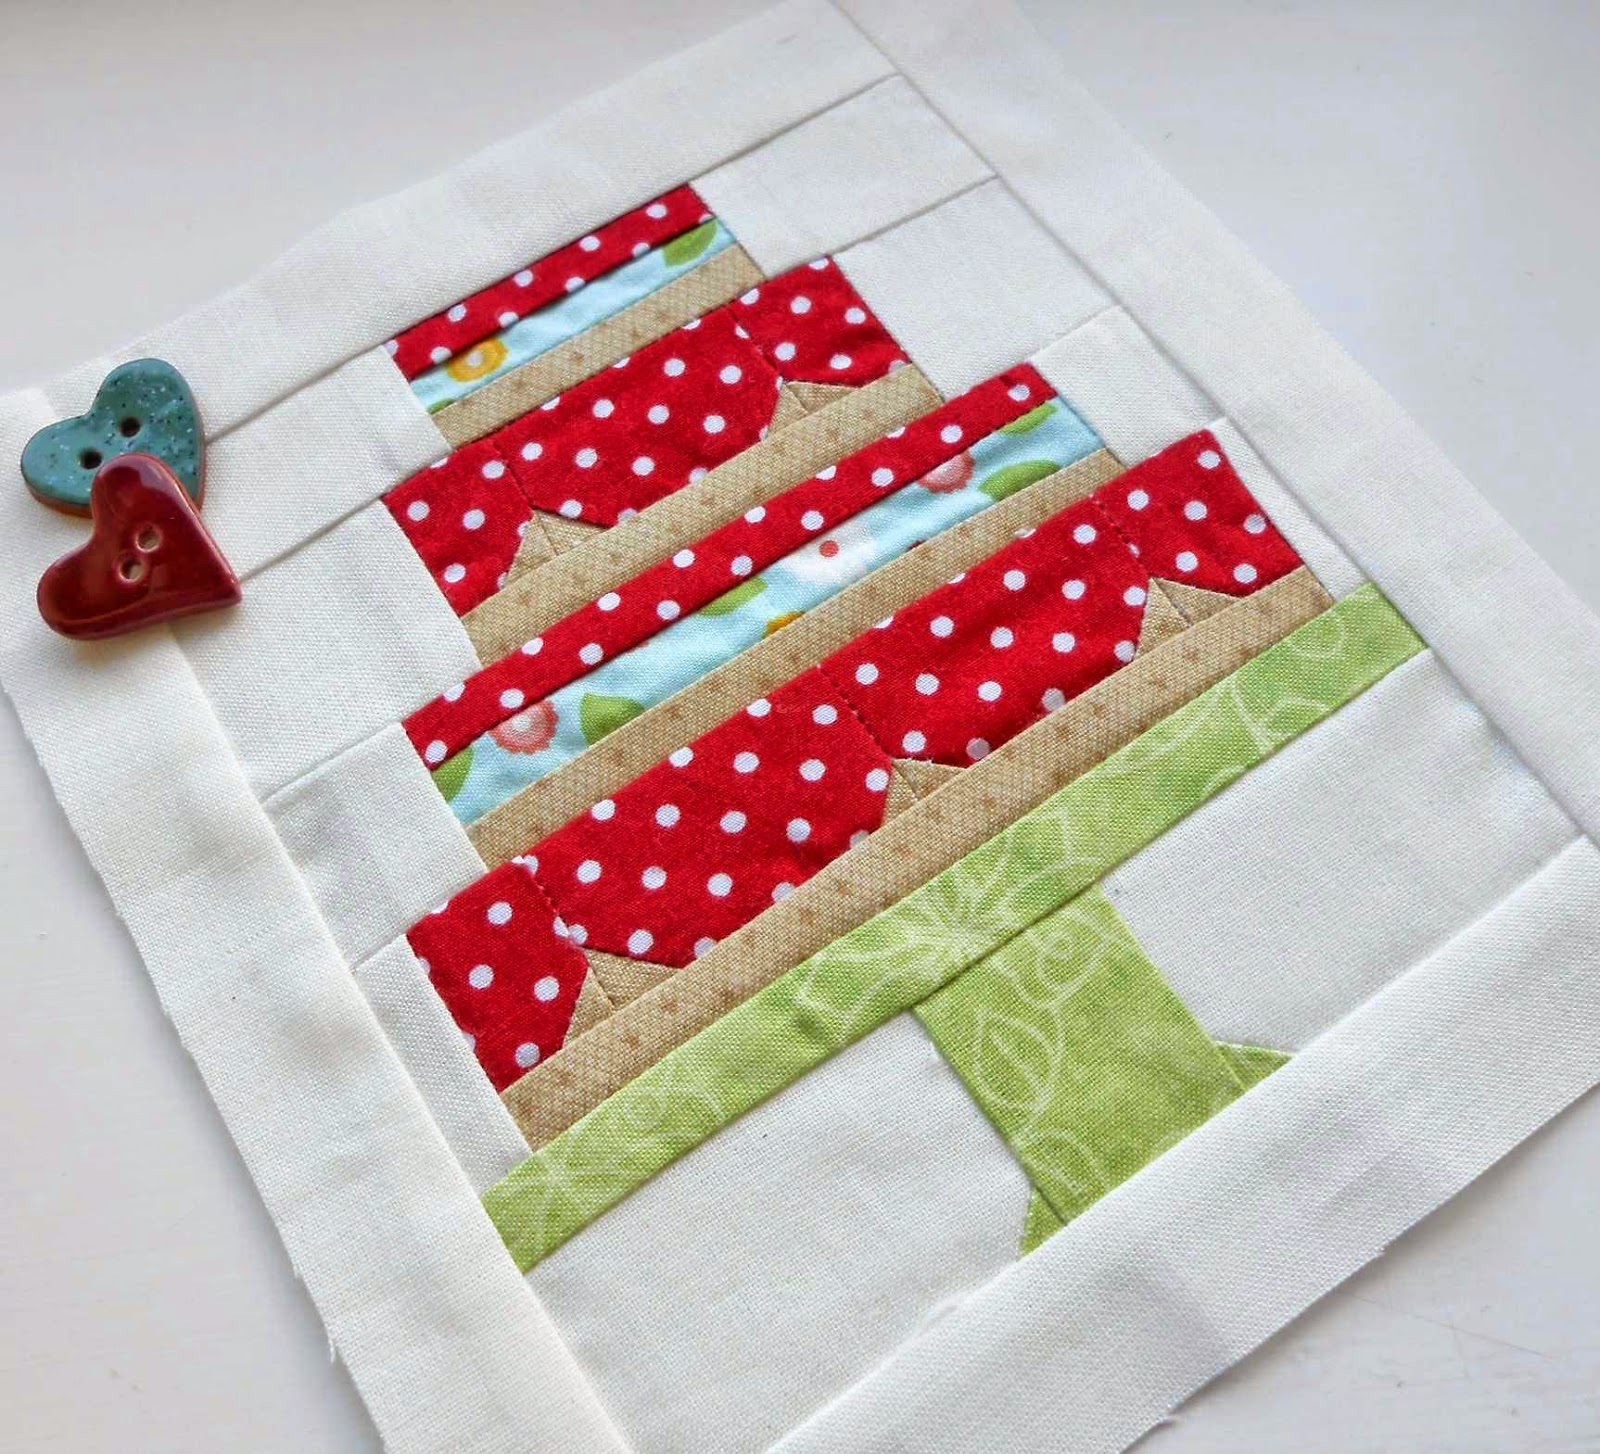 The Patchsmith: Paper-piece And Patchwork Fun